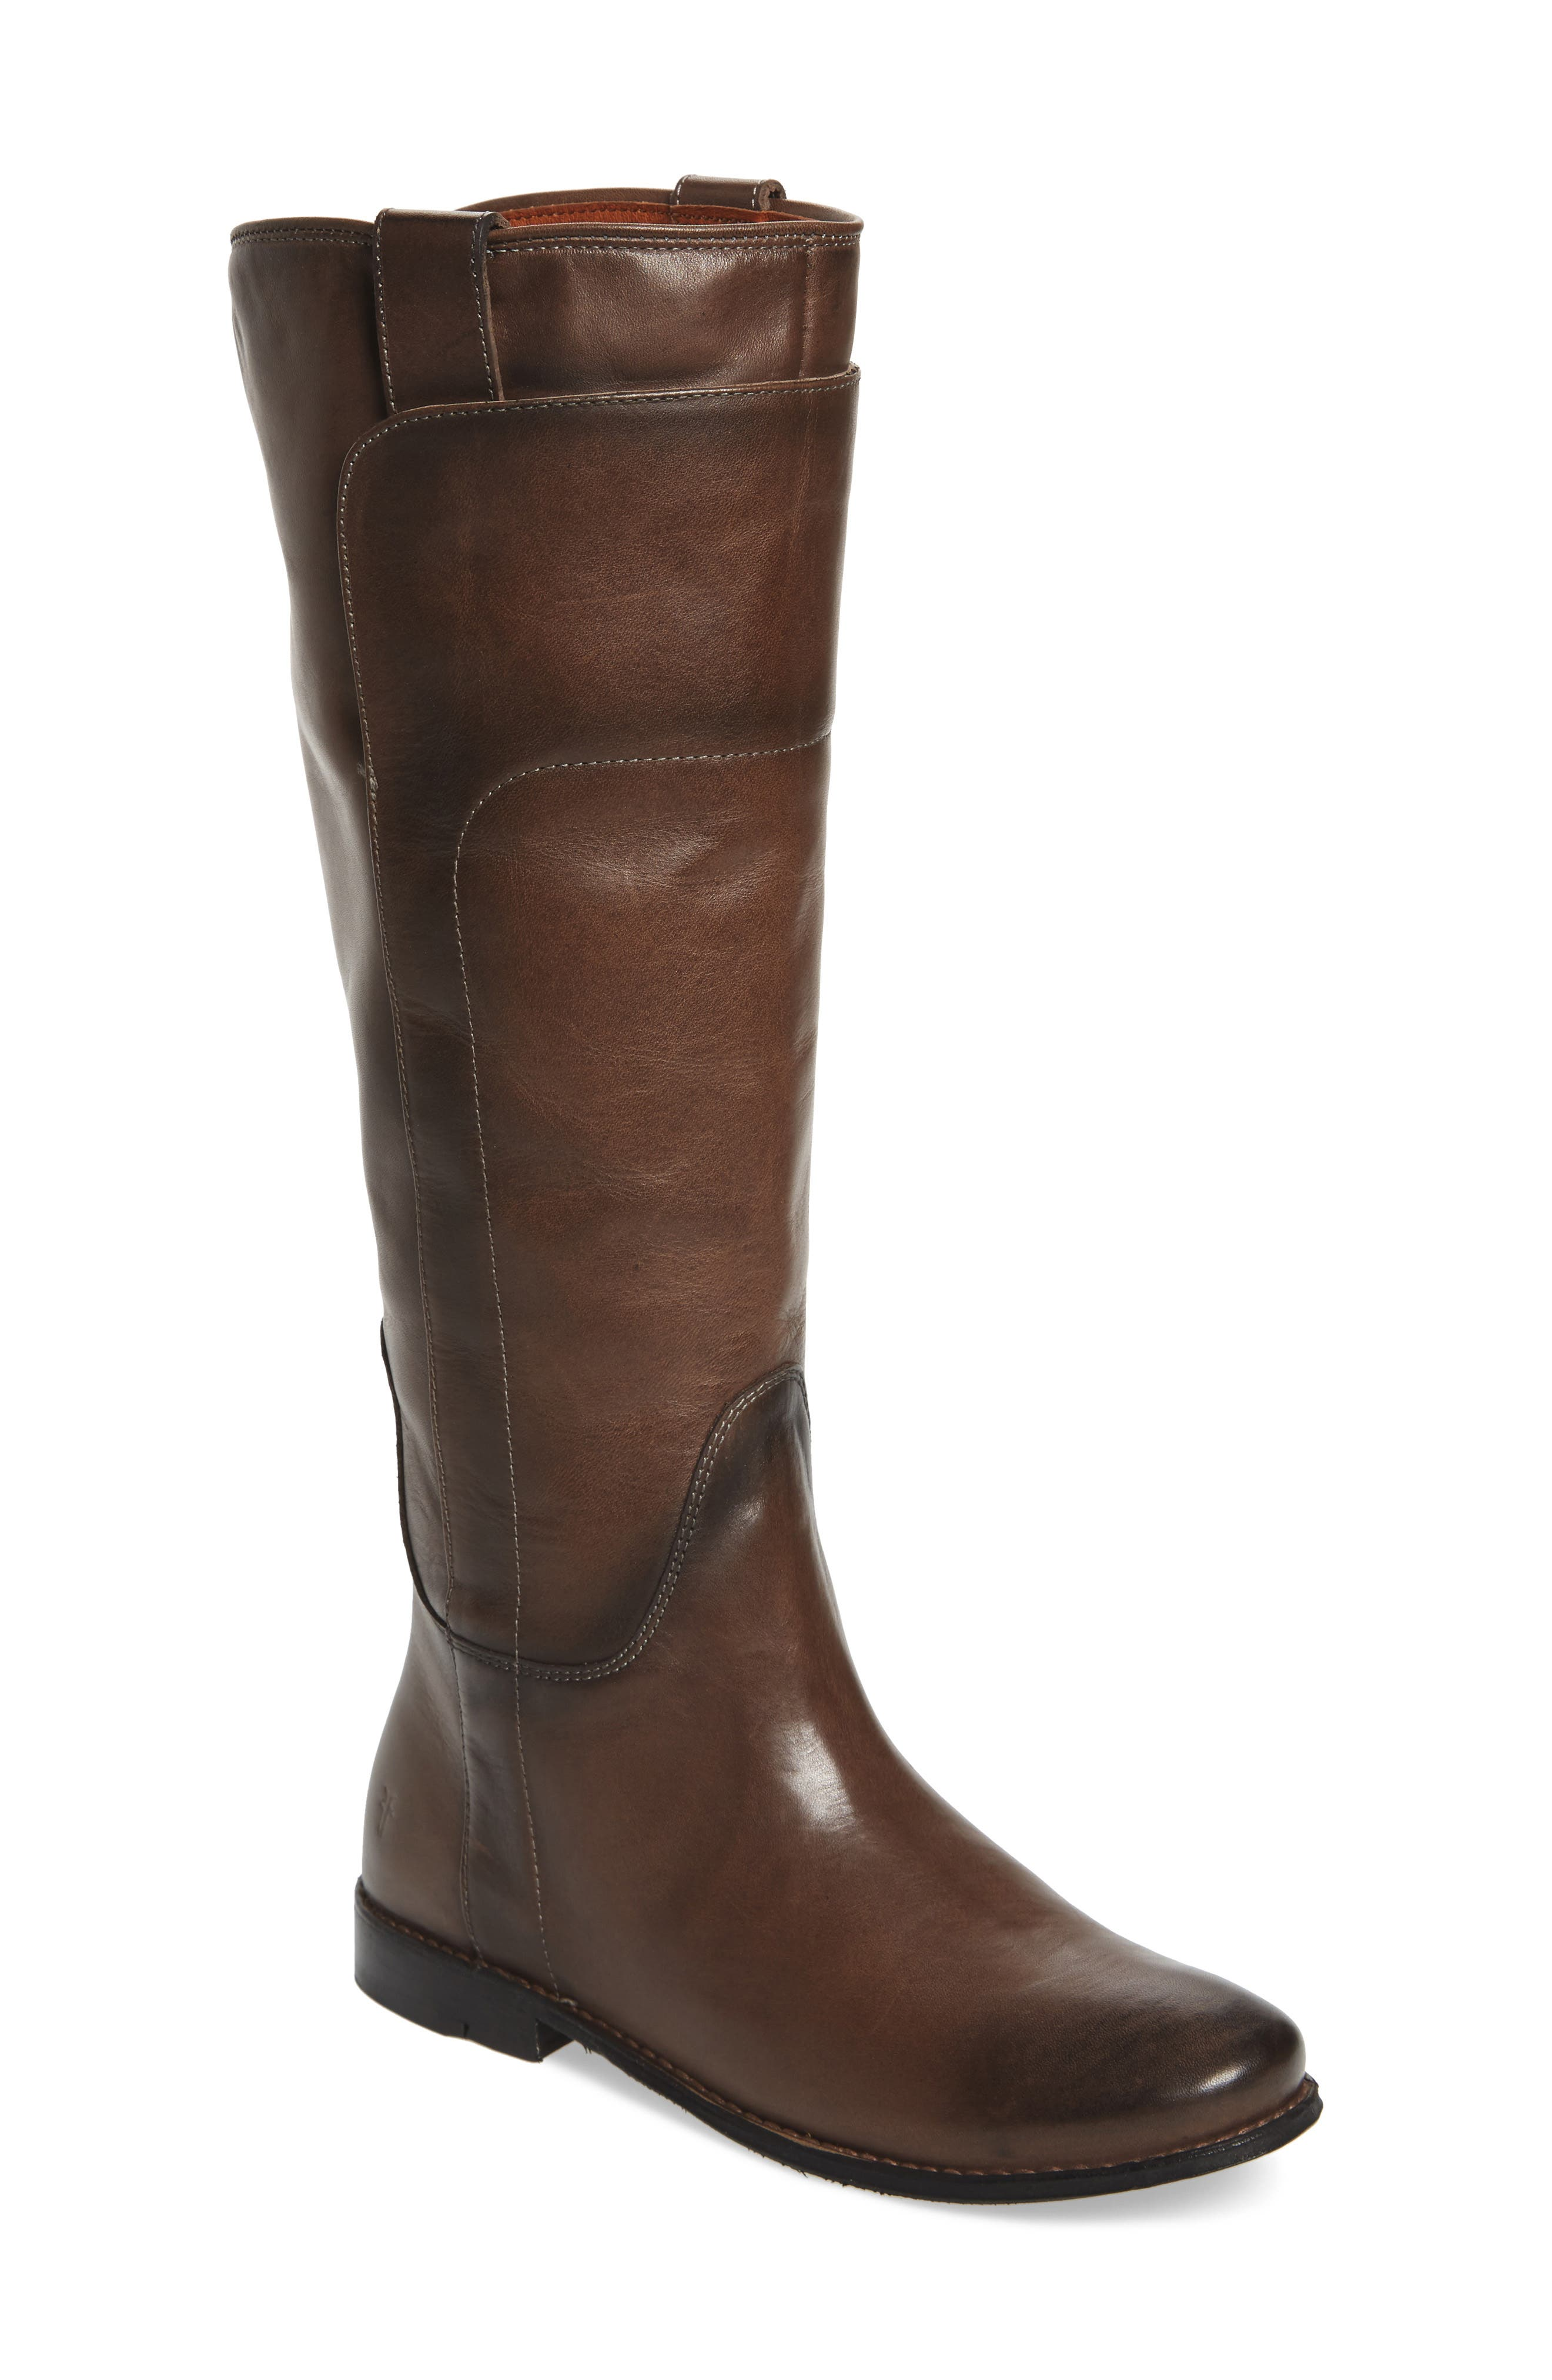 Paige Tall Riding Boot,                         Main,                         color, 020